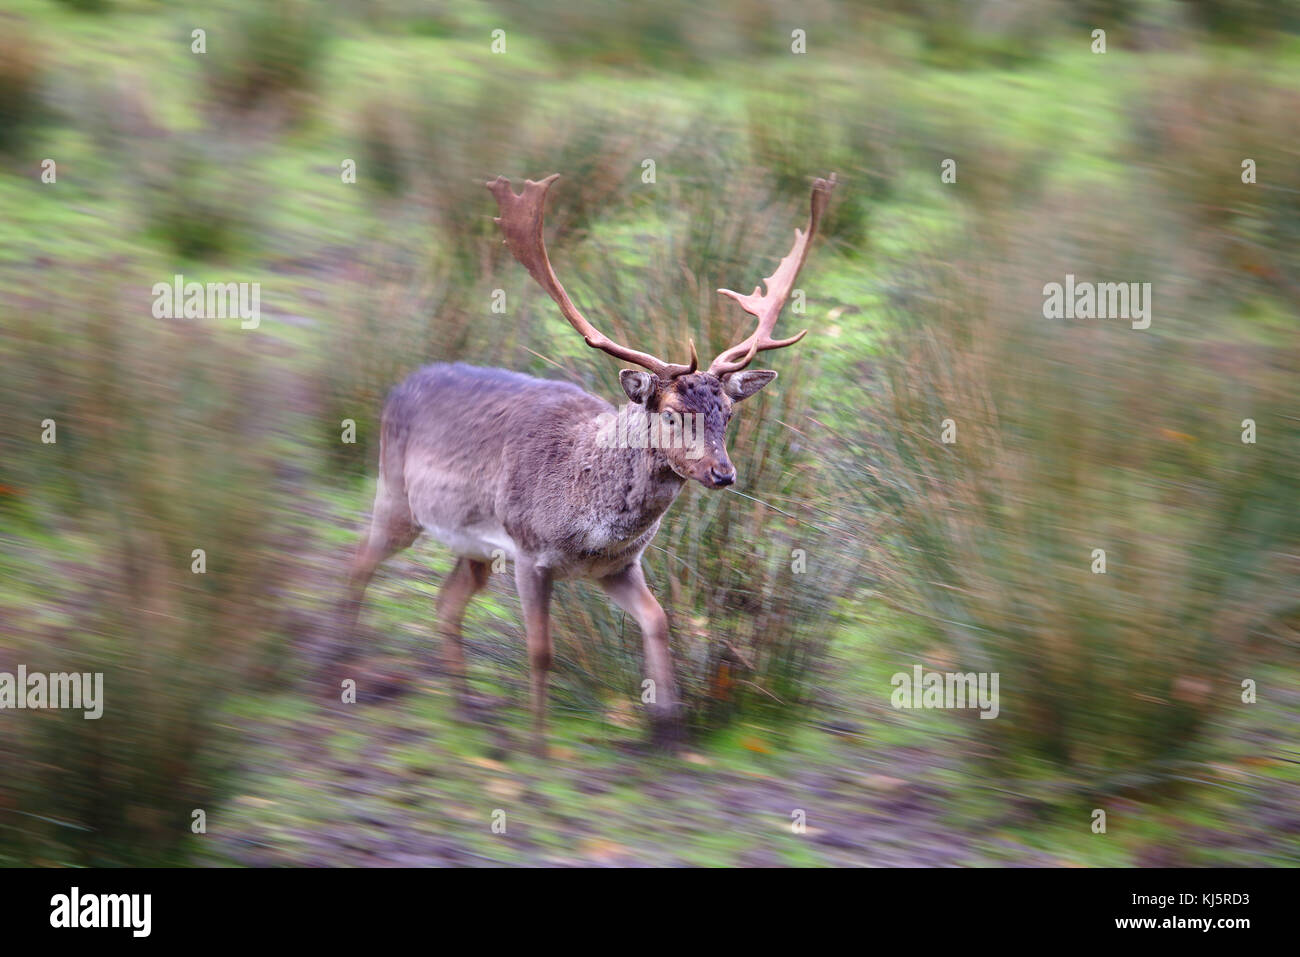 Male fallow deer running past with motion blur towards the edges of the image - Stock Image